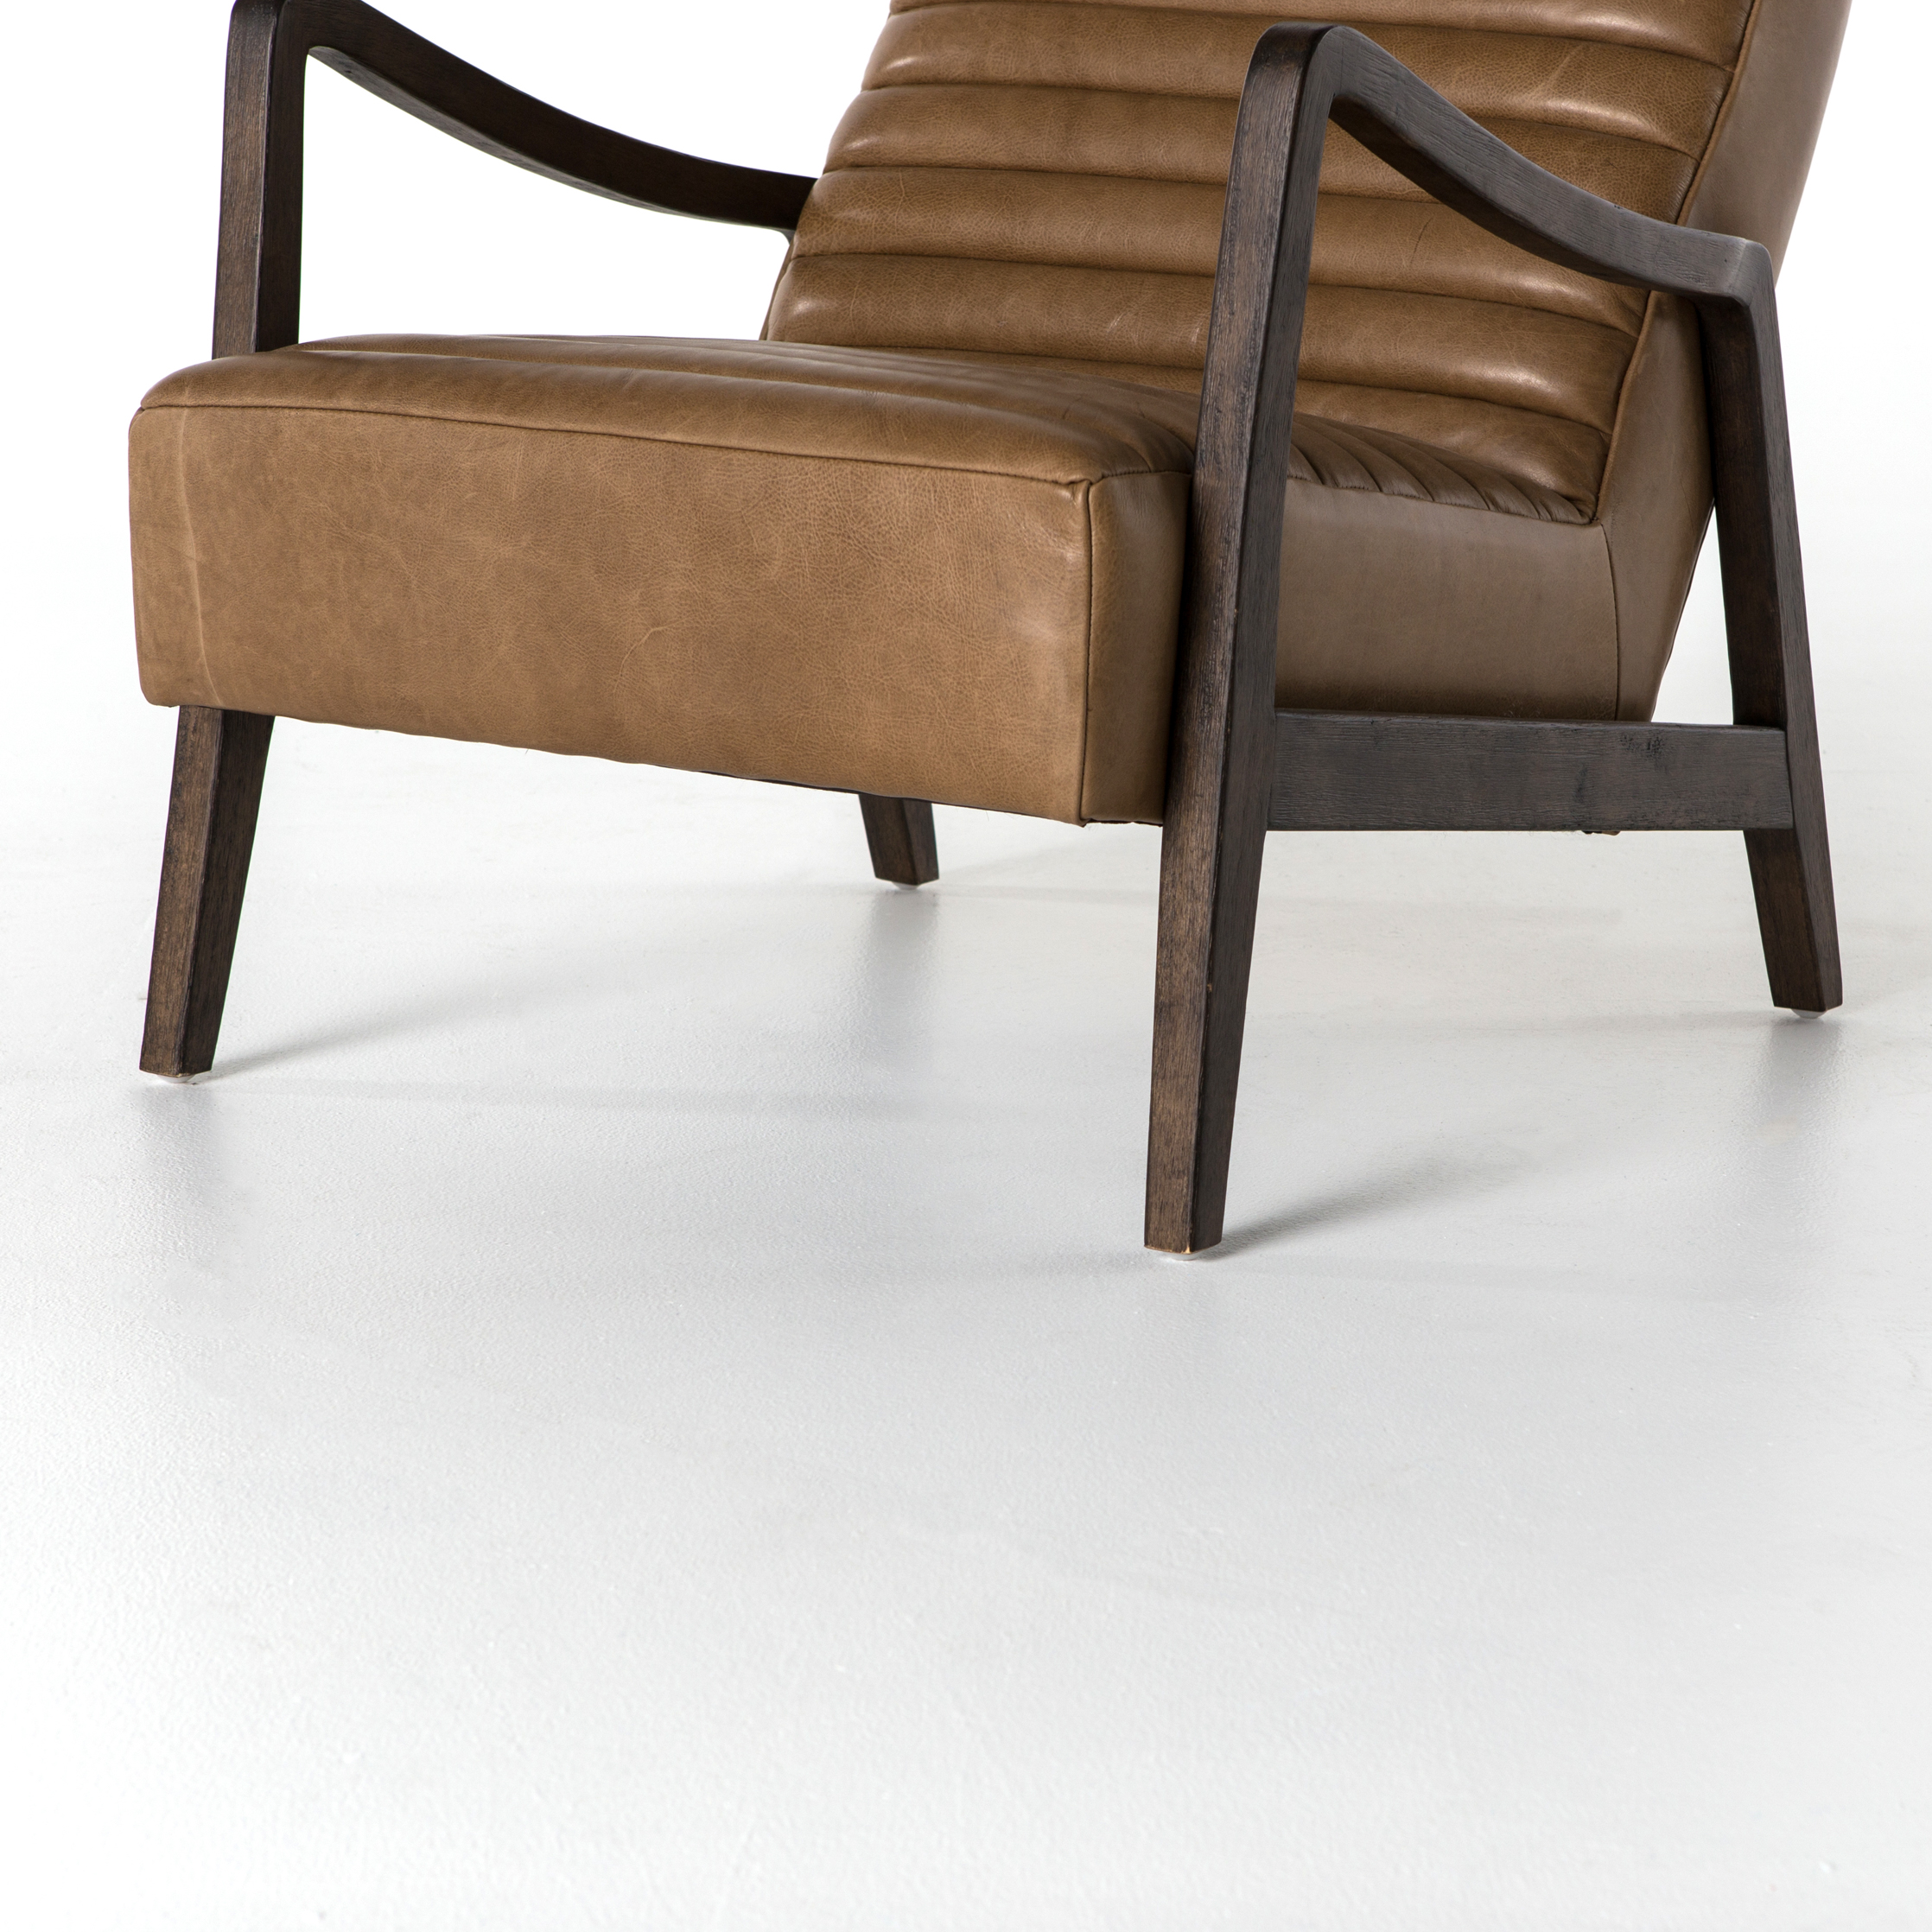 Chance chair hip furniture for Hip furniture